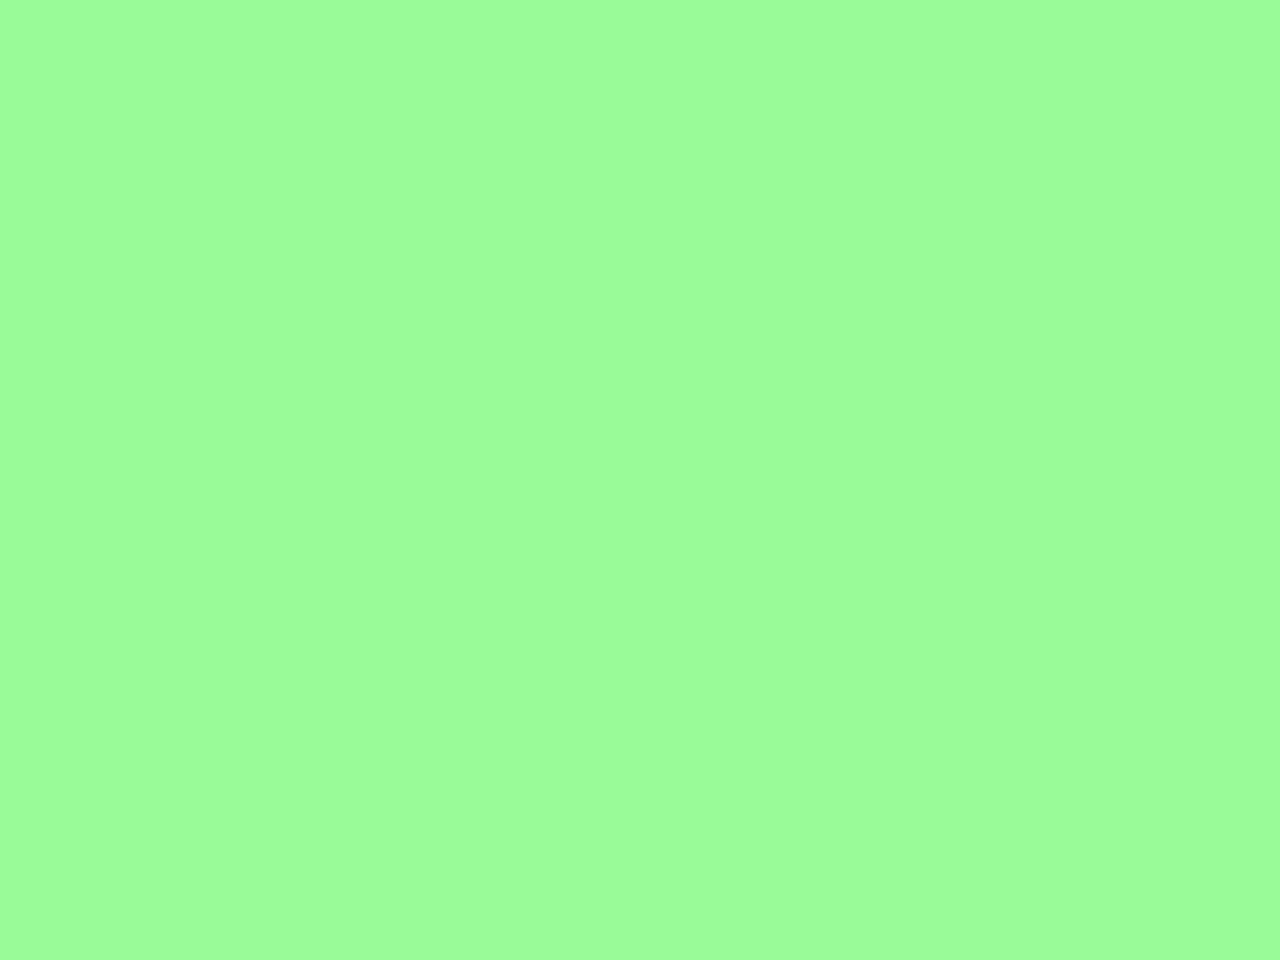 1280x960 Pale Green Solid Color Background